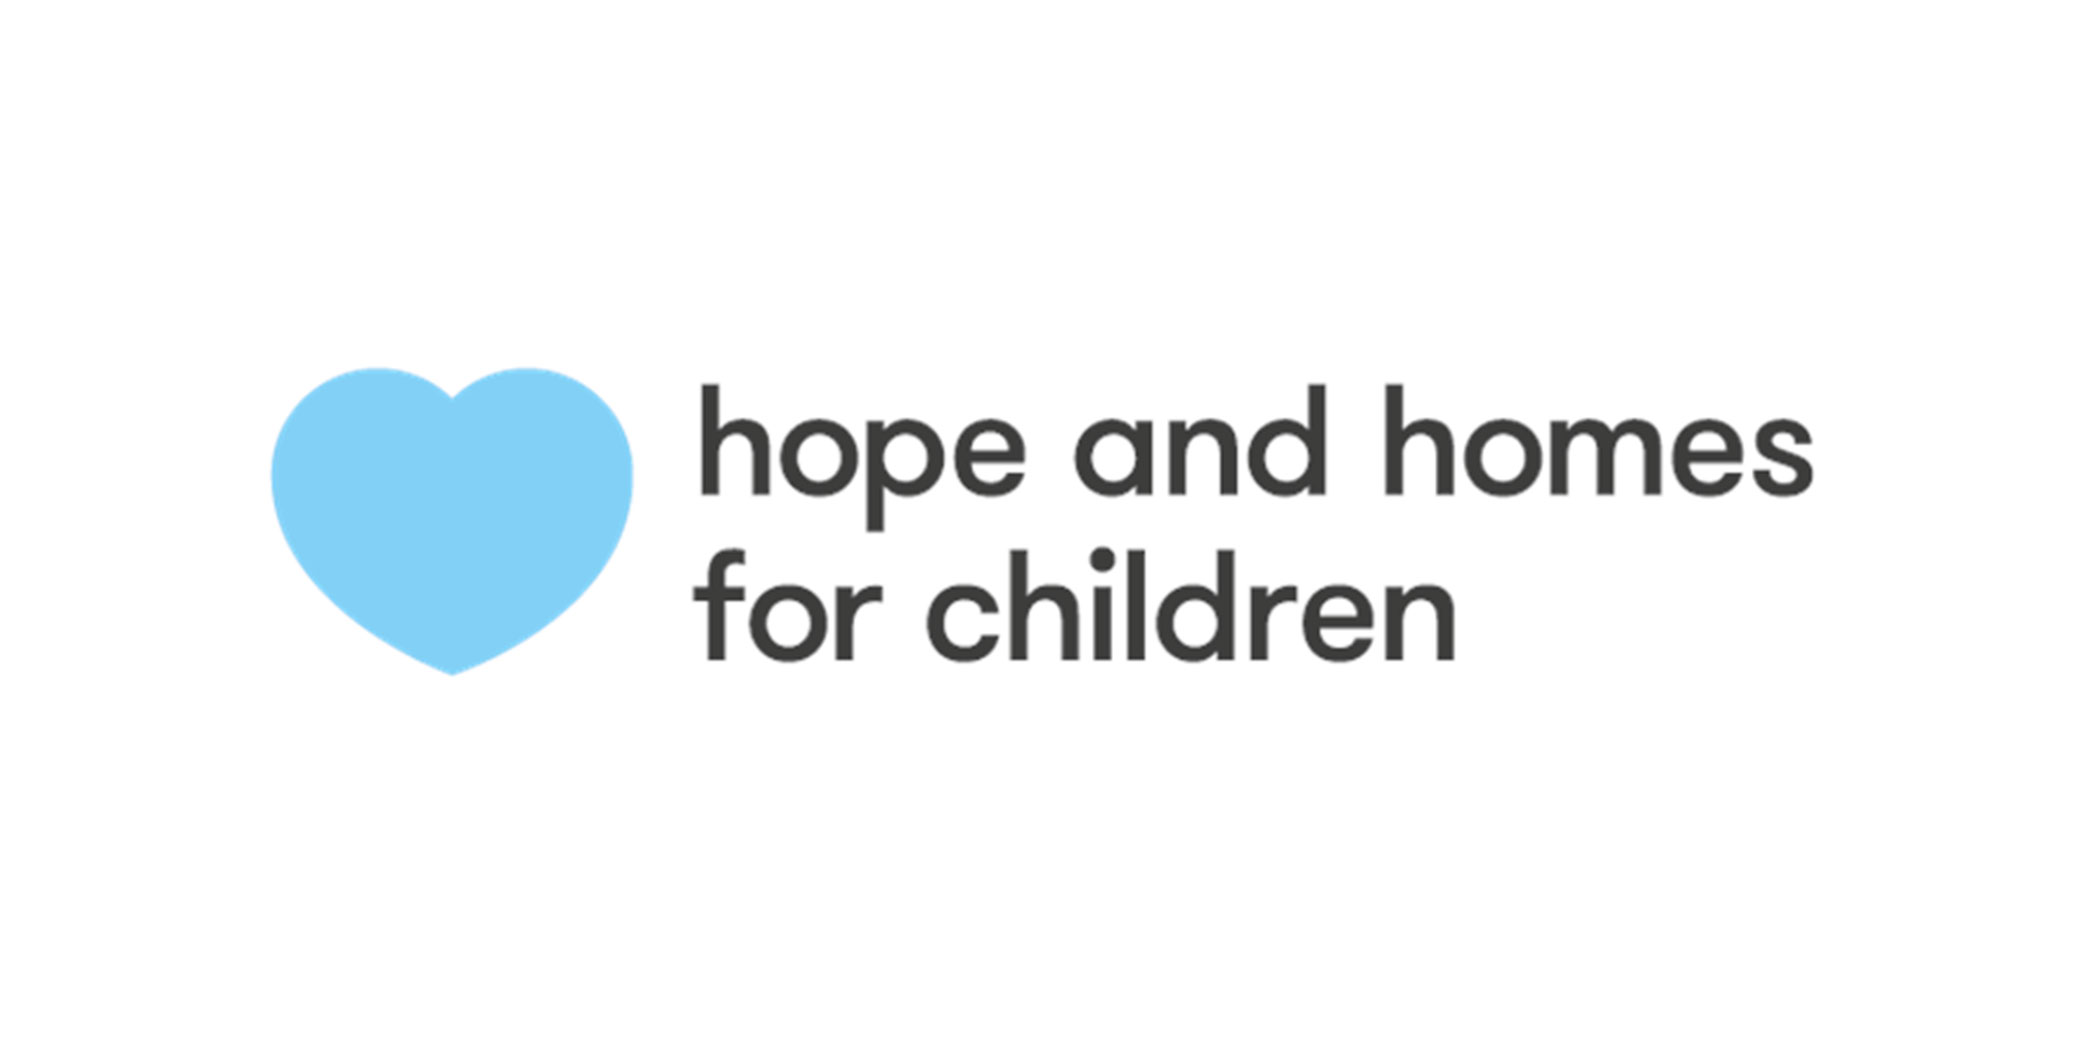 home and hope for children